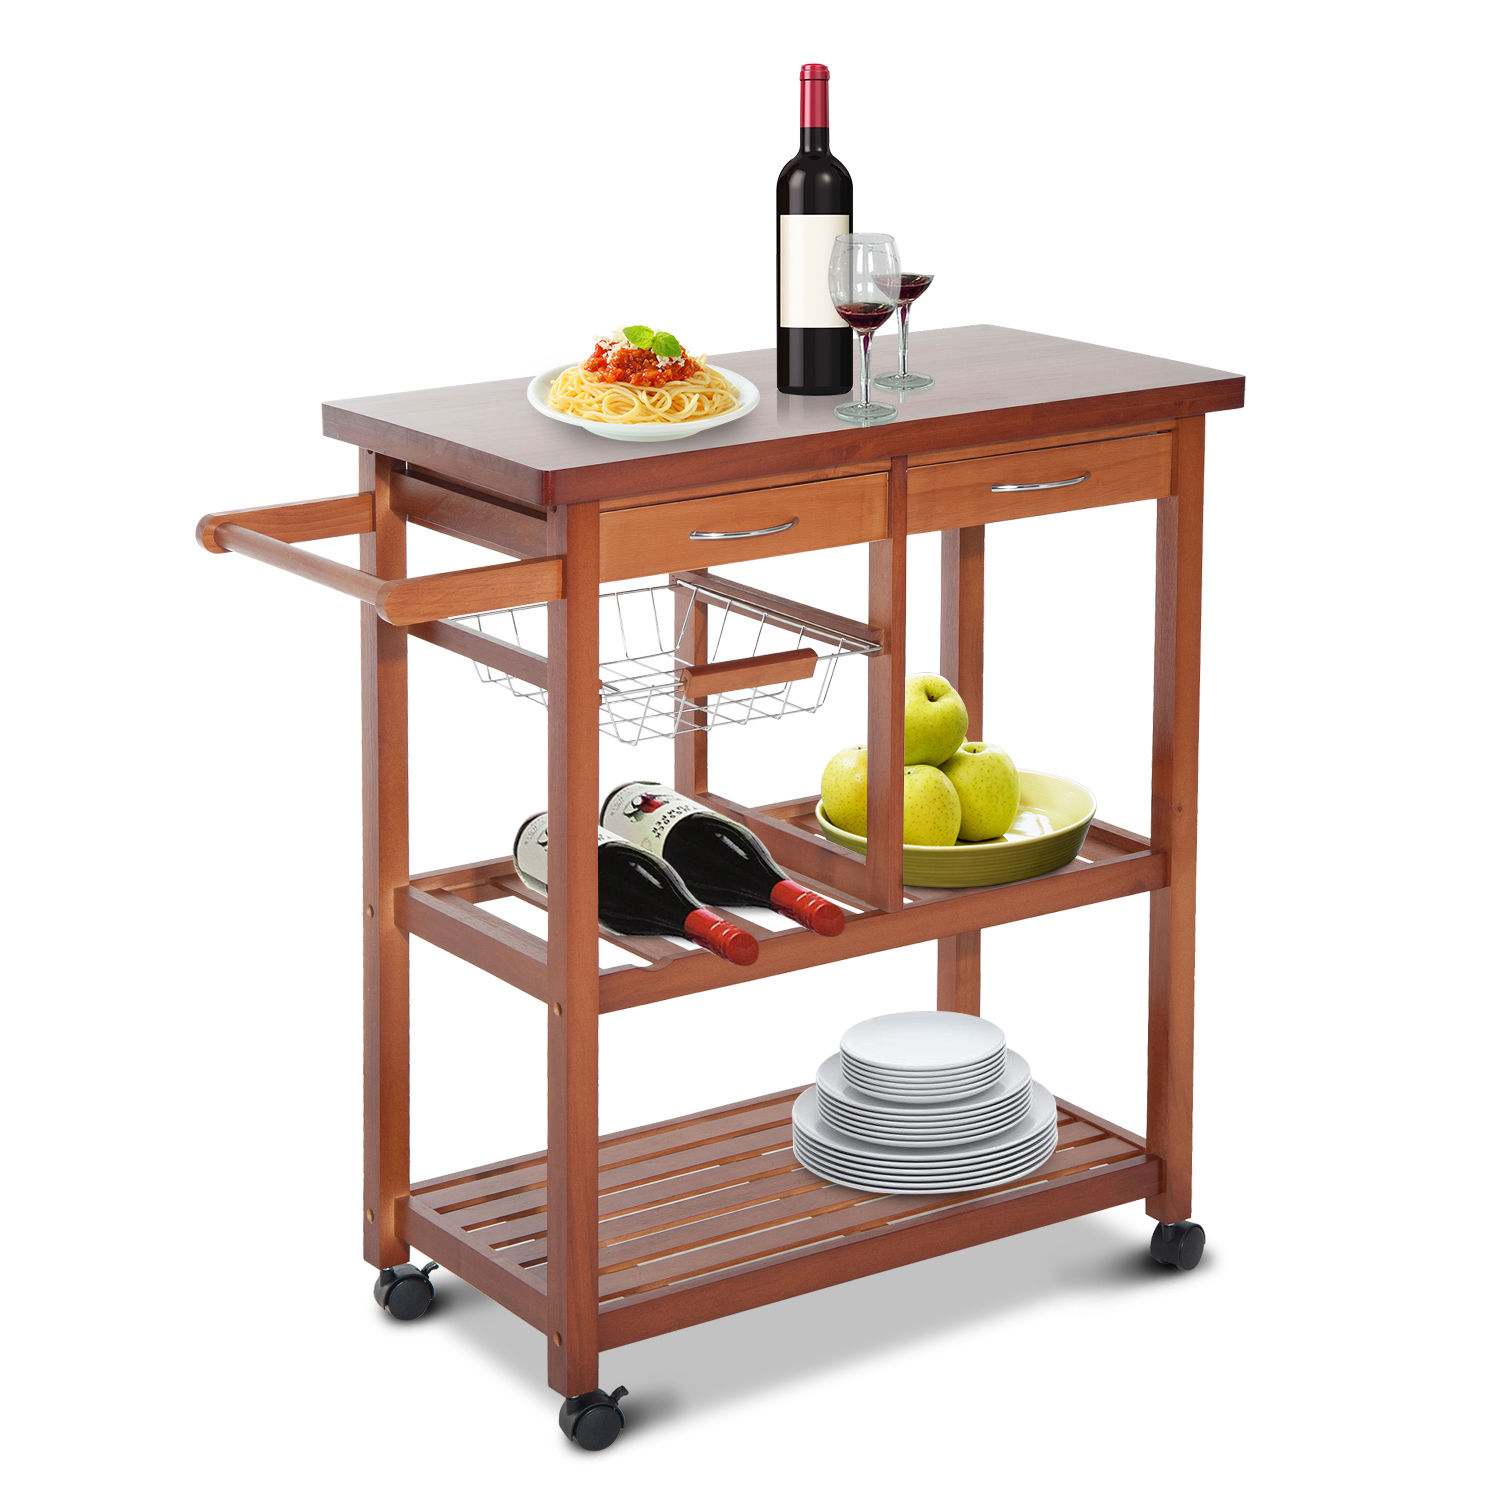 kitchen cart with drawers stainless steel hood wooden rolling island trolley storage shelf w baskets